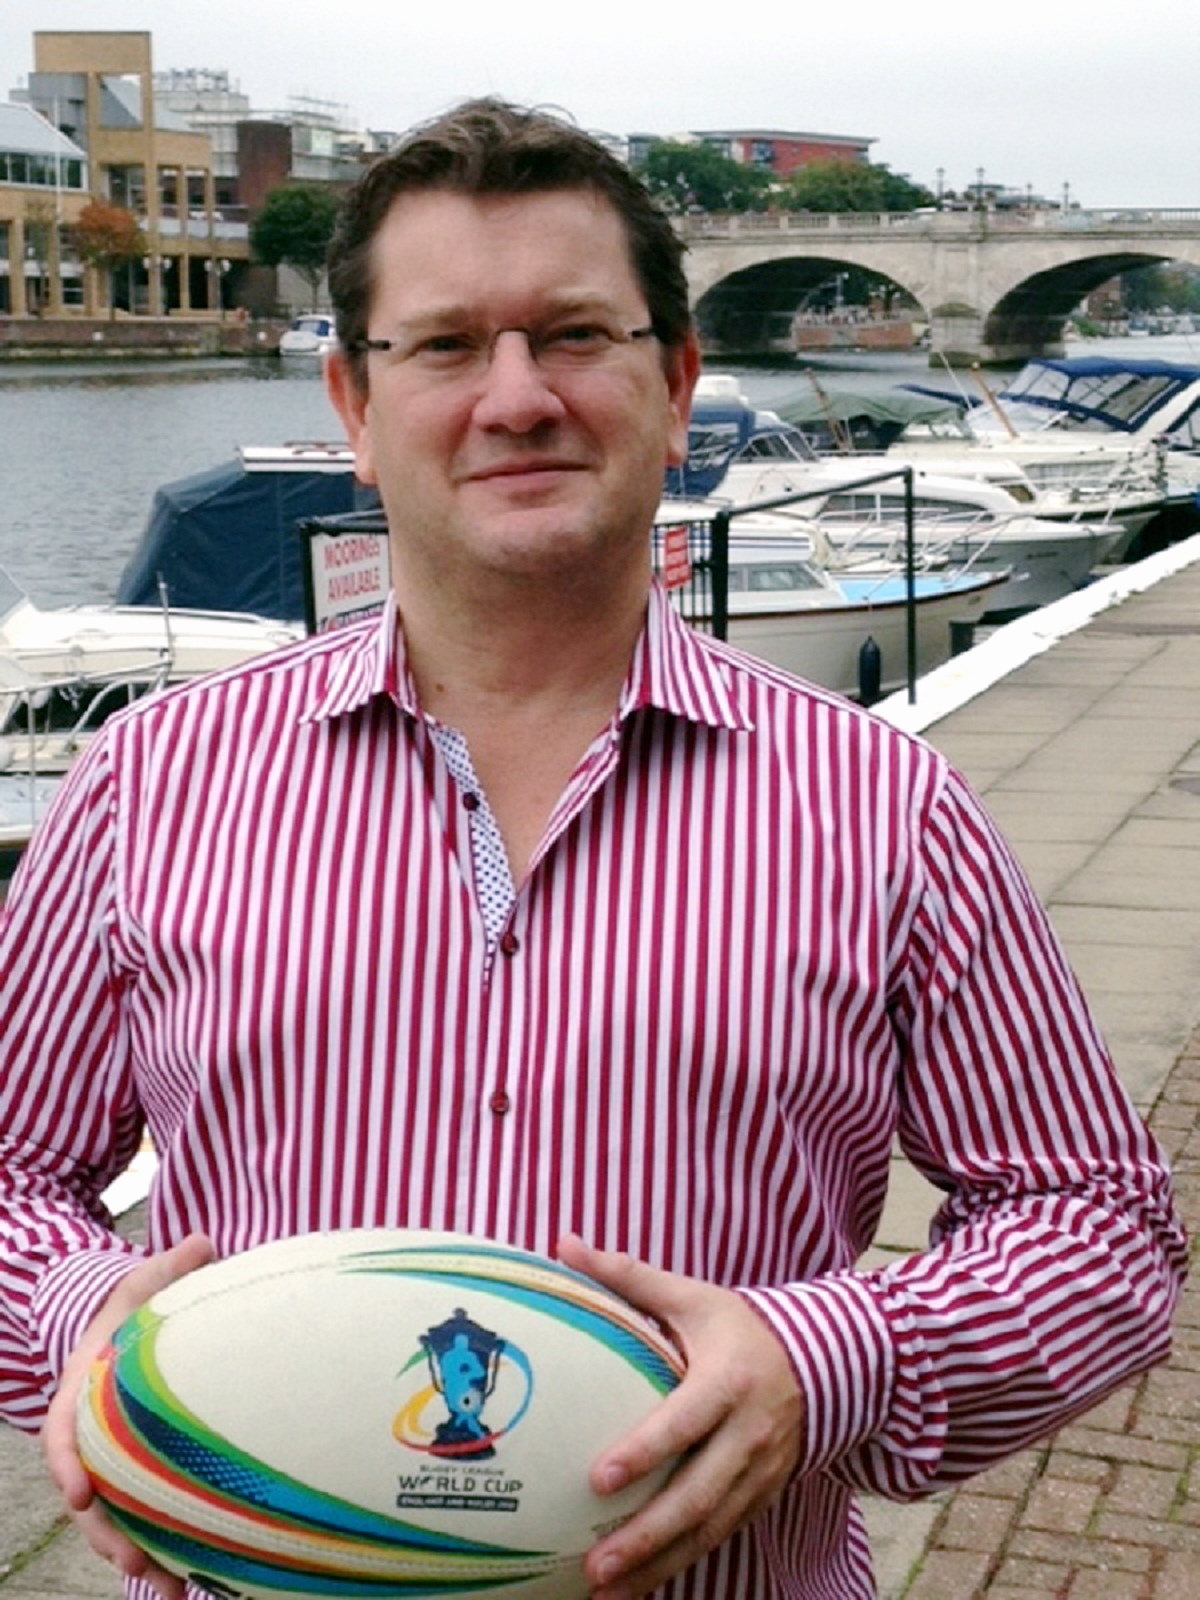 Richard Lamb won't be at the Bulls game on Sunday but is due to meet the administrator next week